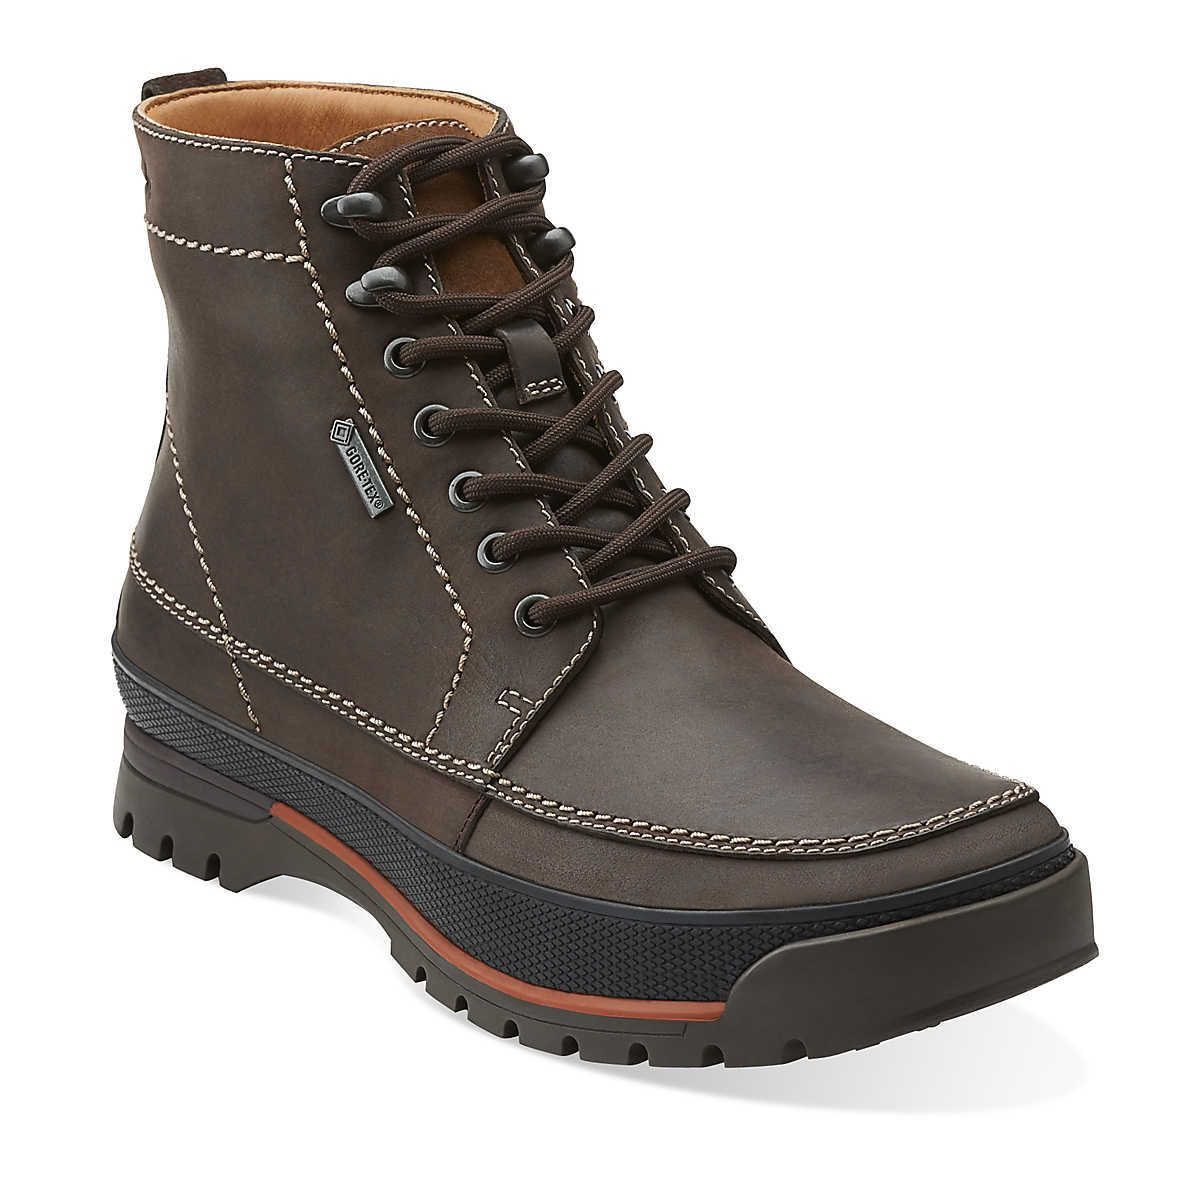 Narly Peak Gtx in Brown Leather - Warm Lined - Mens Boots from Clarks